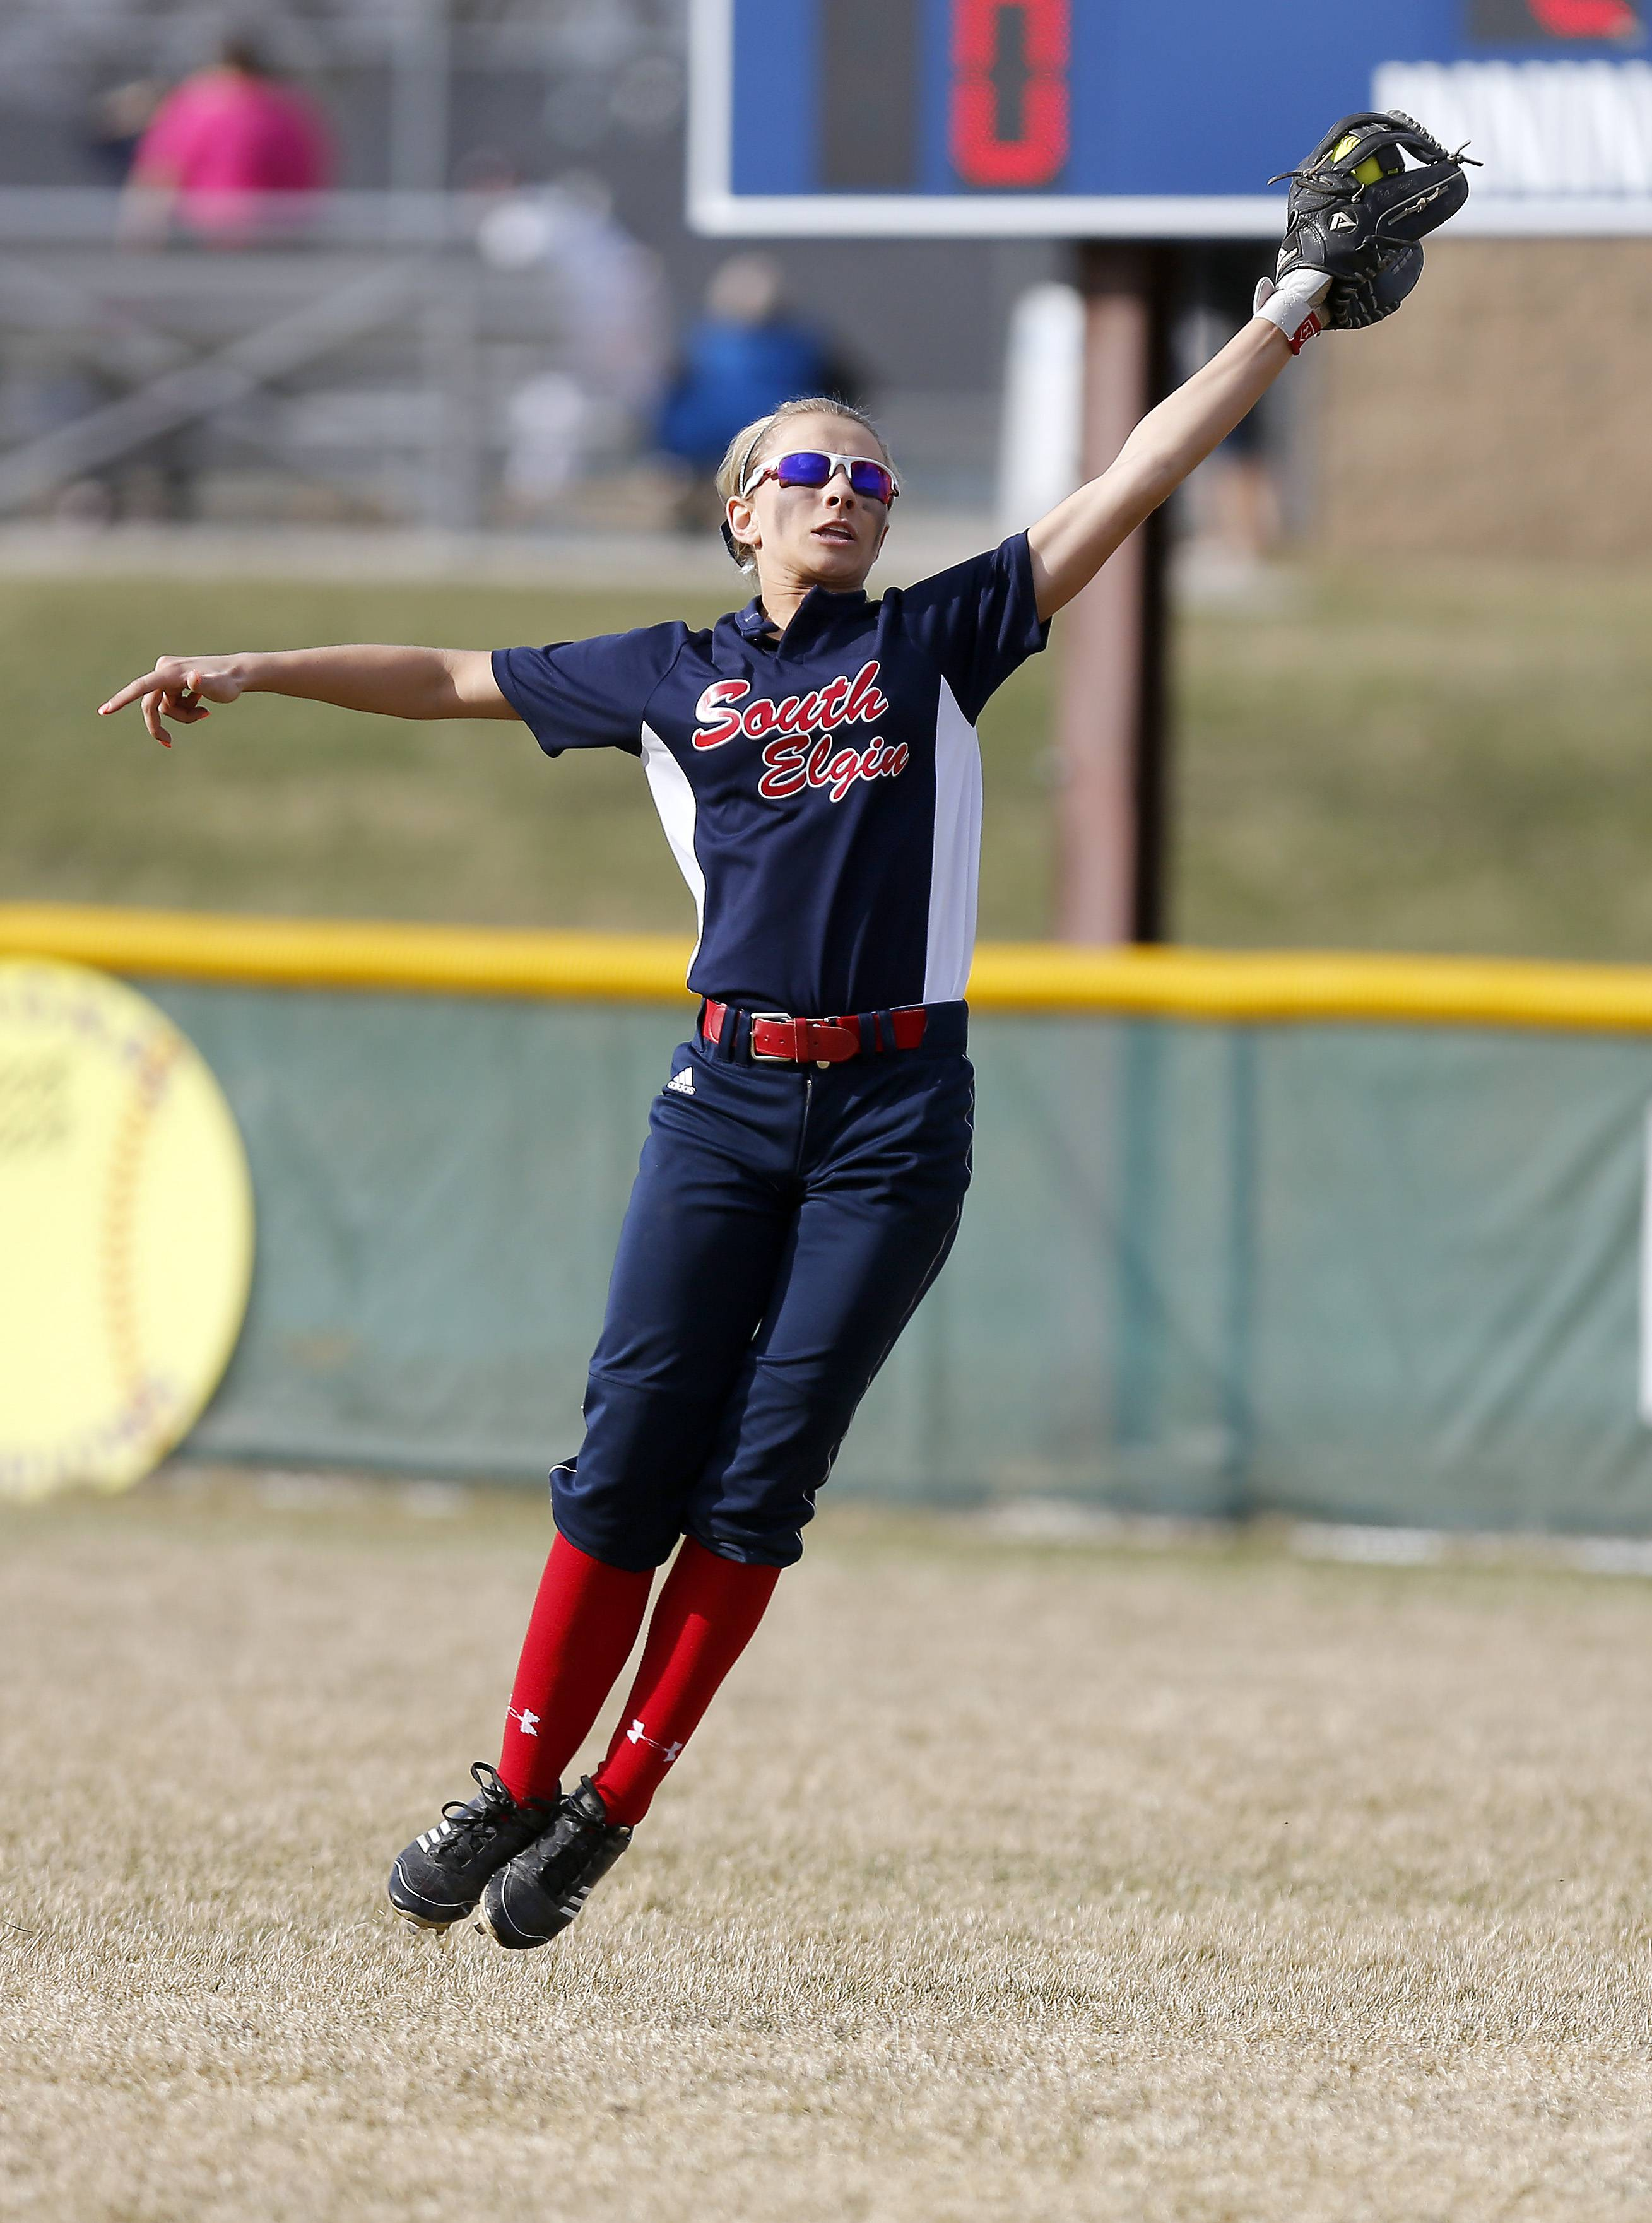 South Elgin's Mallory Mecklenburg grabs a shot by St. Charles North's Sabrina Rabin to close out the second inning Friday at South Elgin.